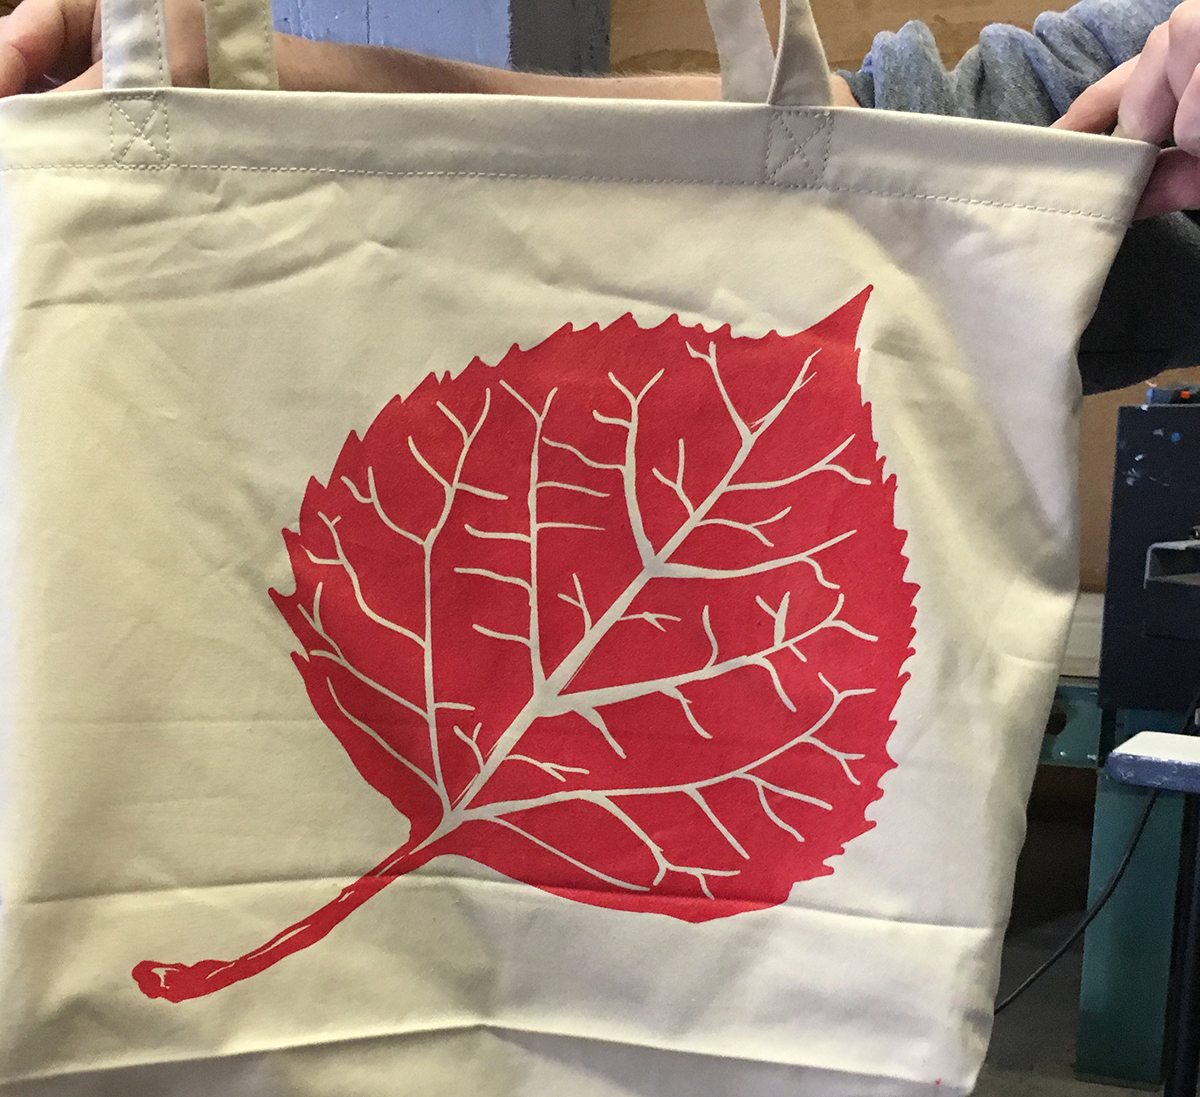 Reverse side of tote bag, hot off the press!